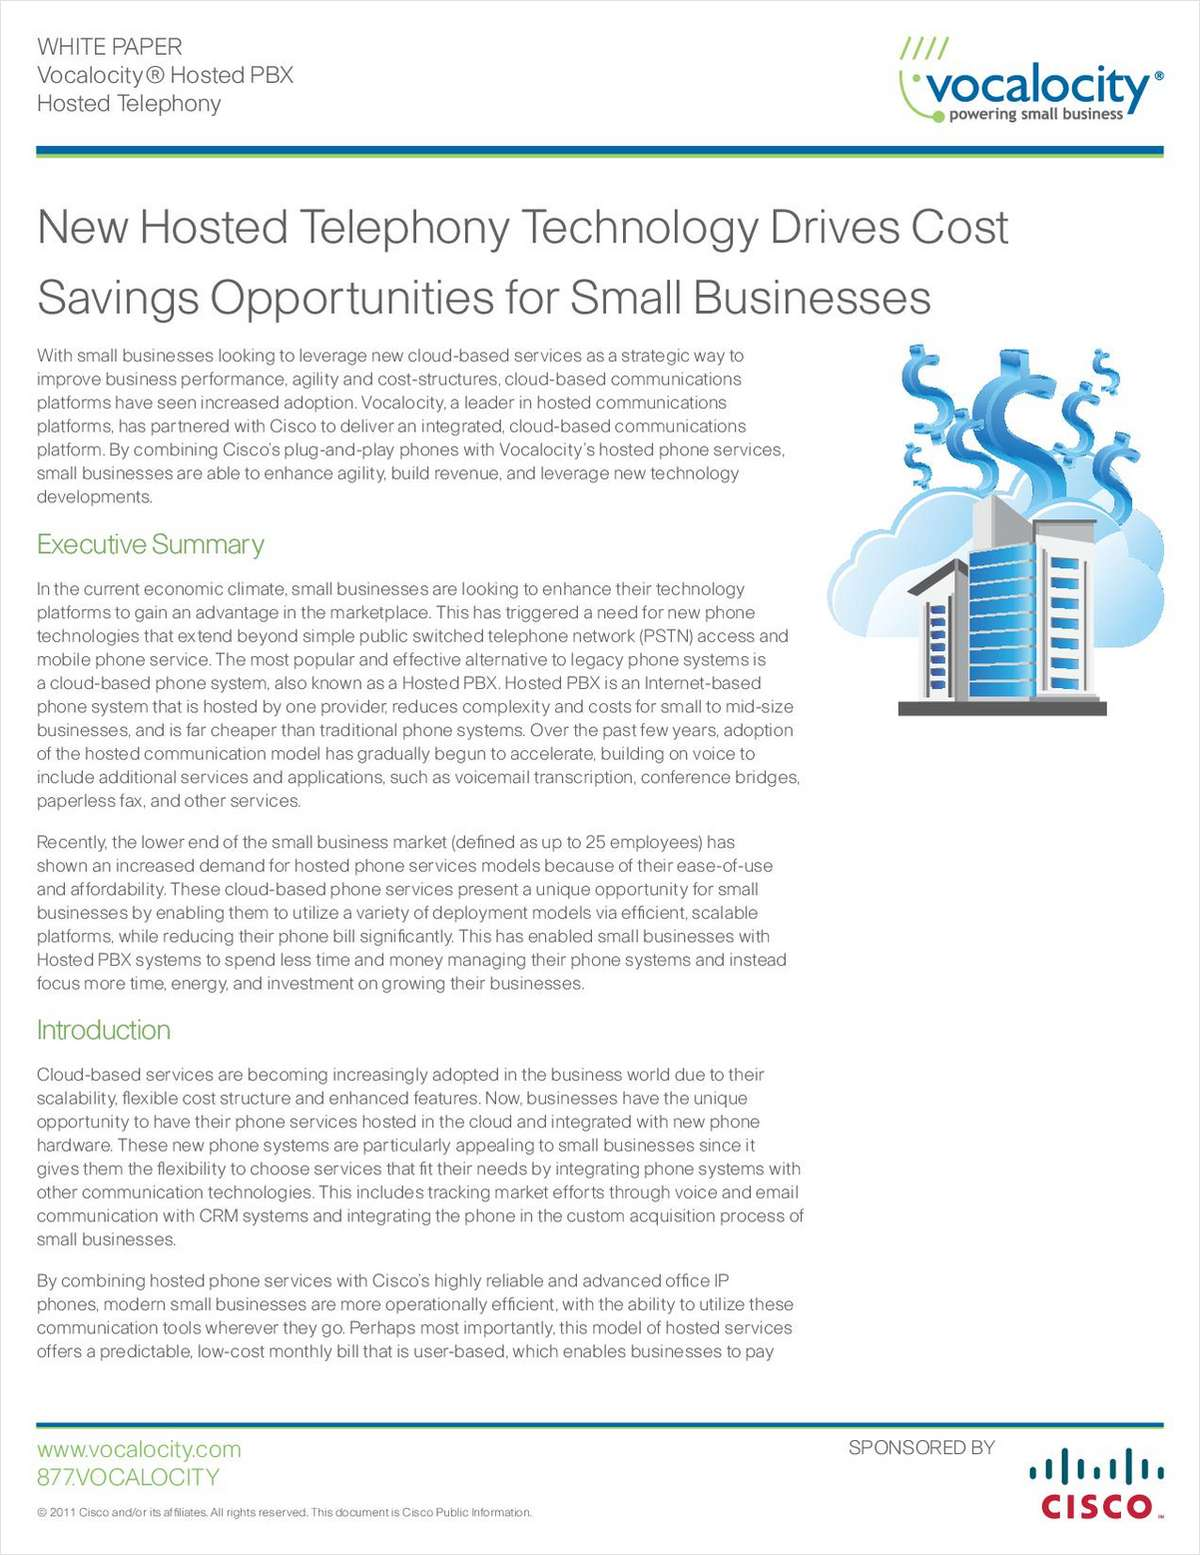 Cisco and Vocalocity Deliver Cost Savings Opportunities for Small Businesses